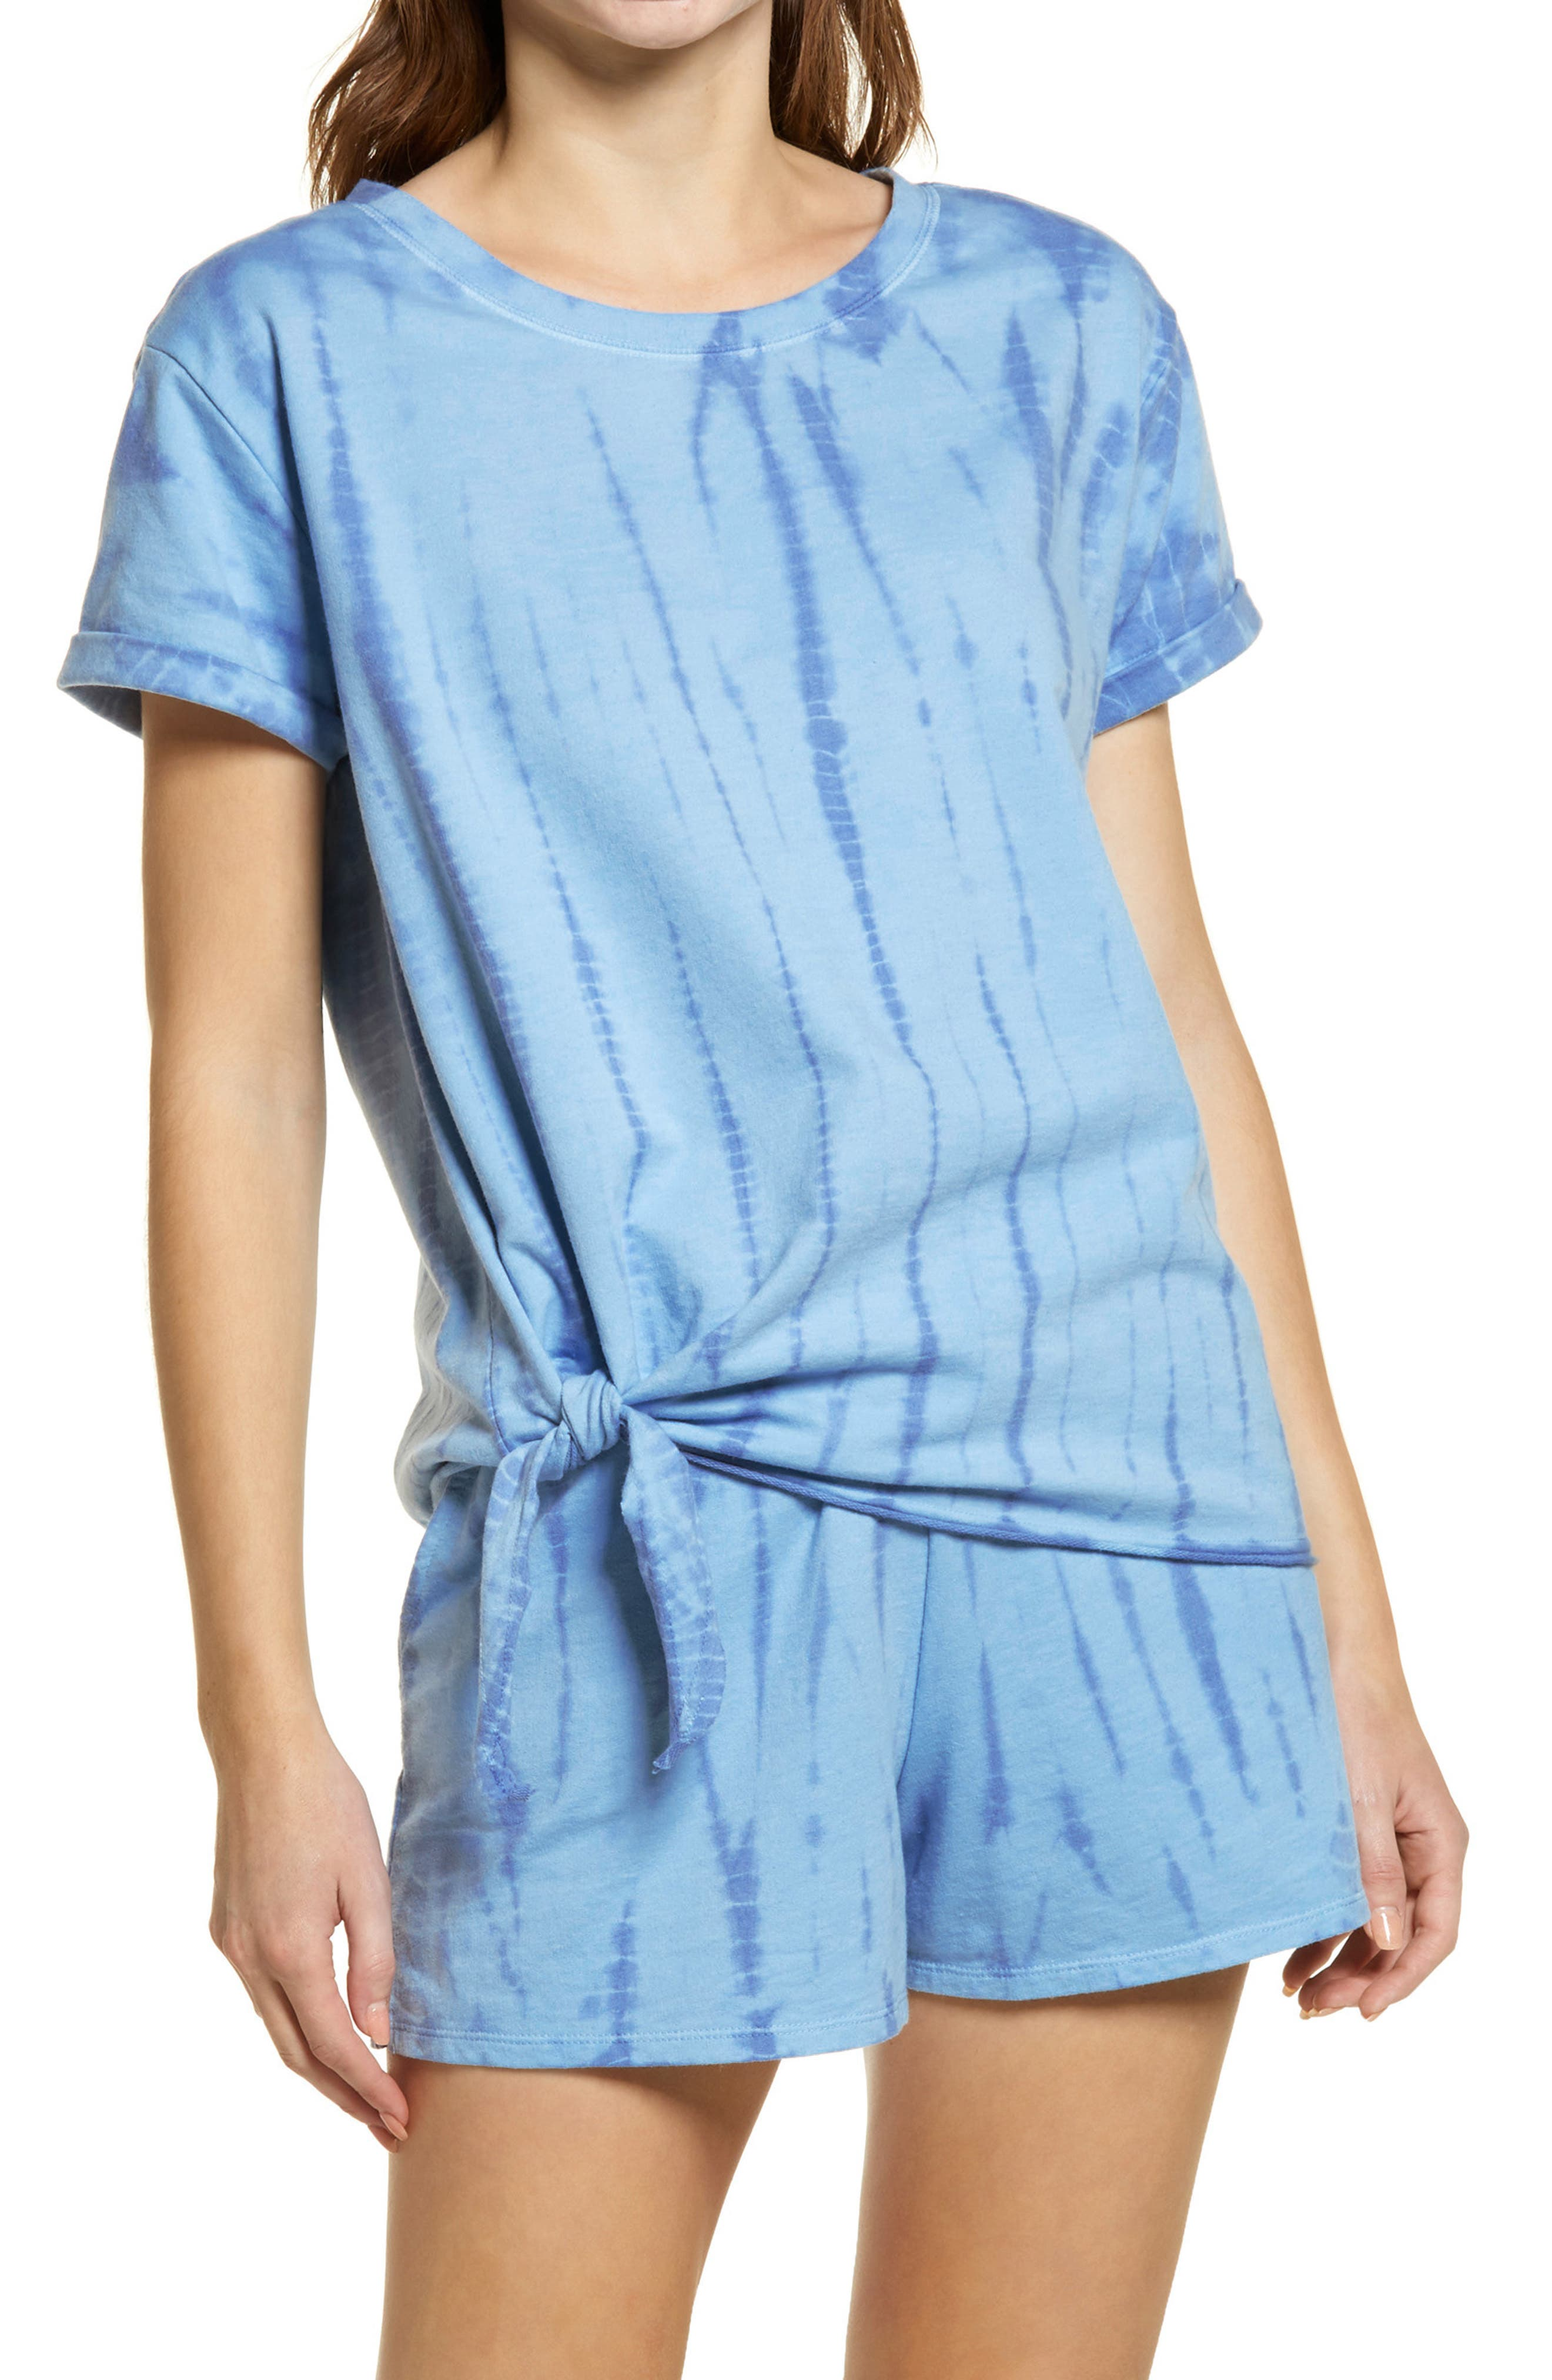 French Terry Side Tie T-Shirt